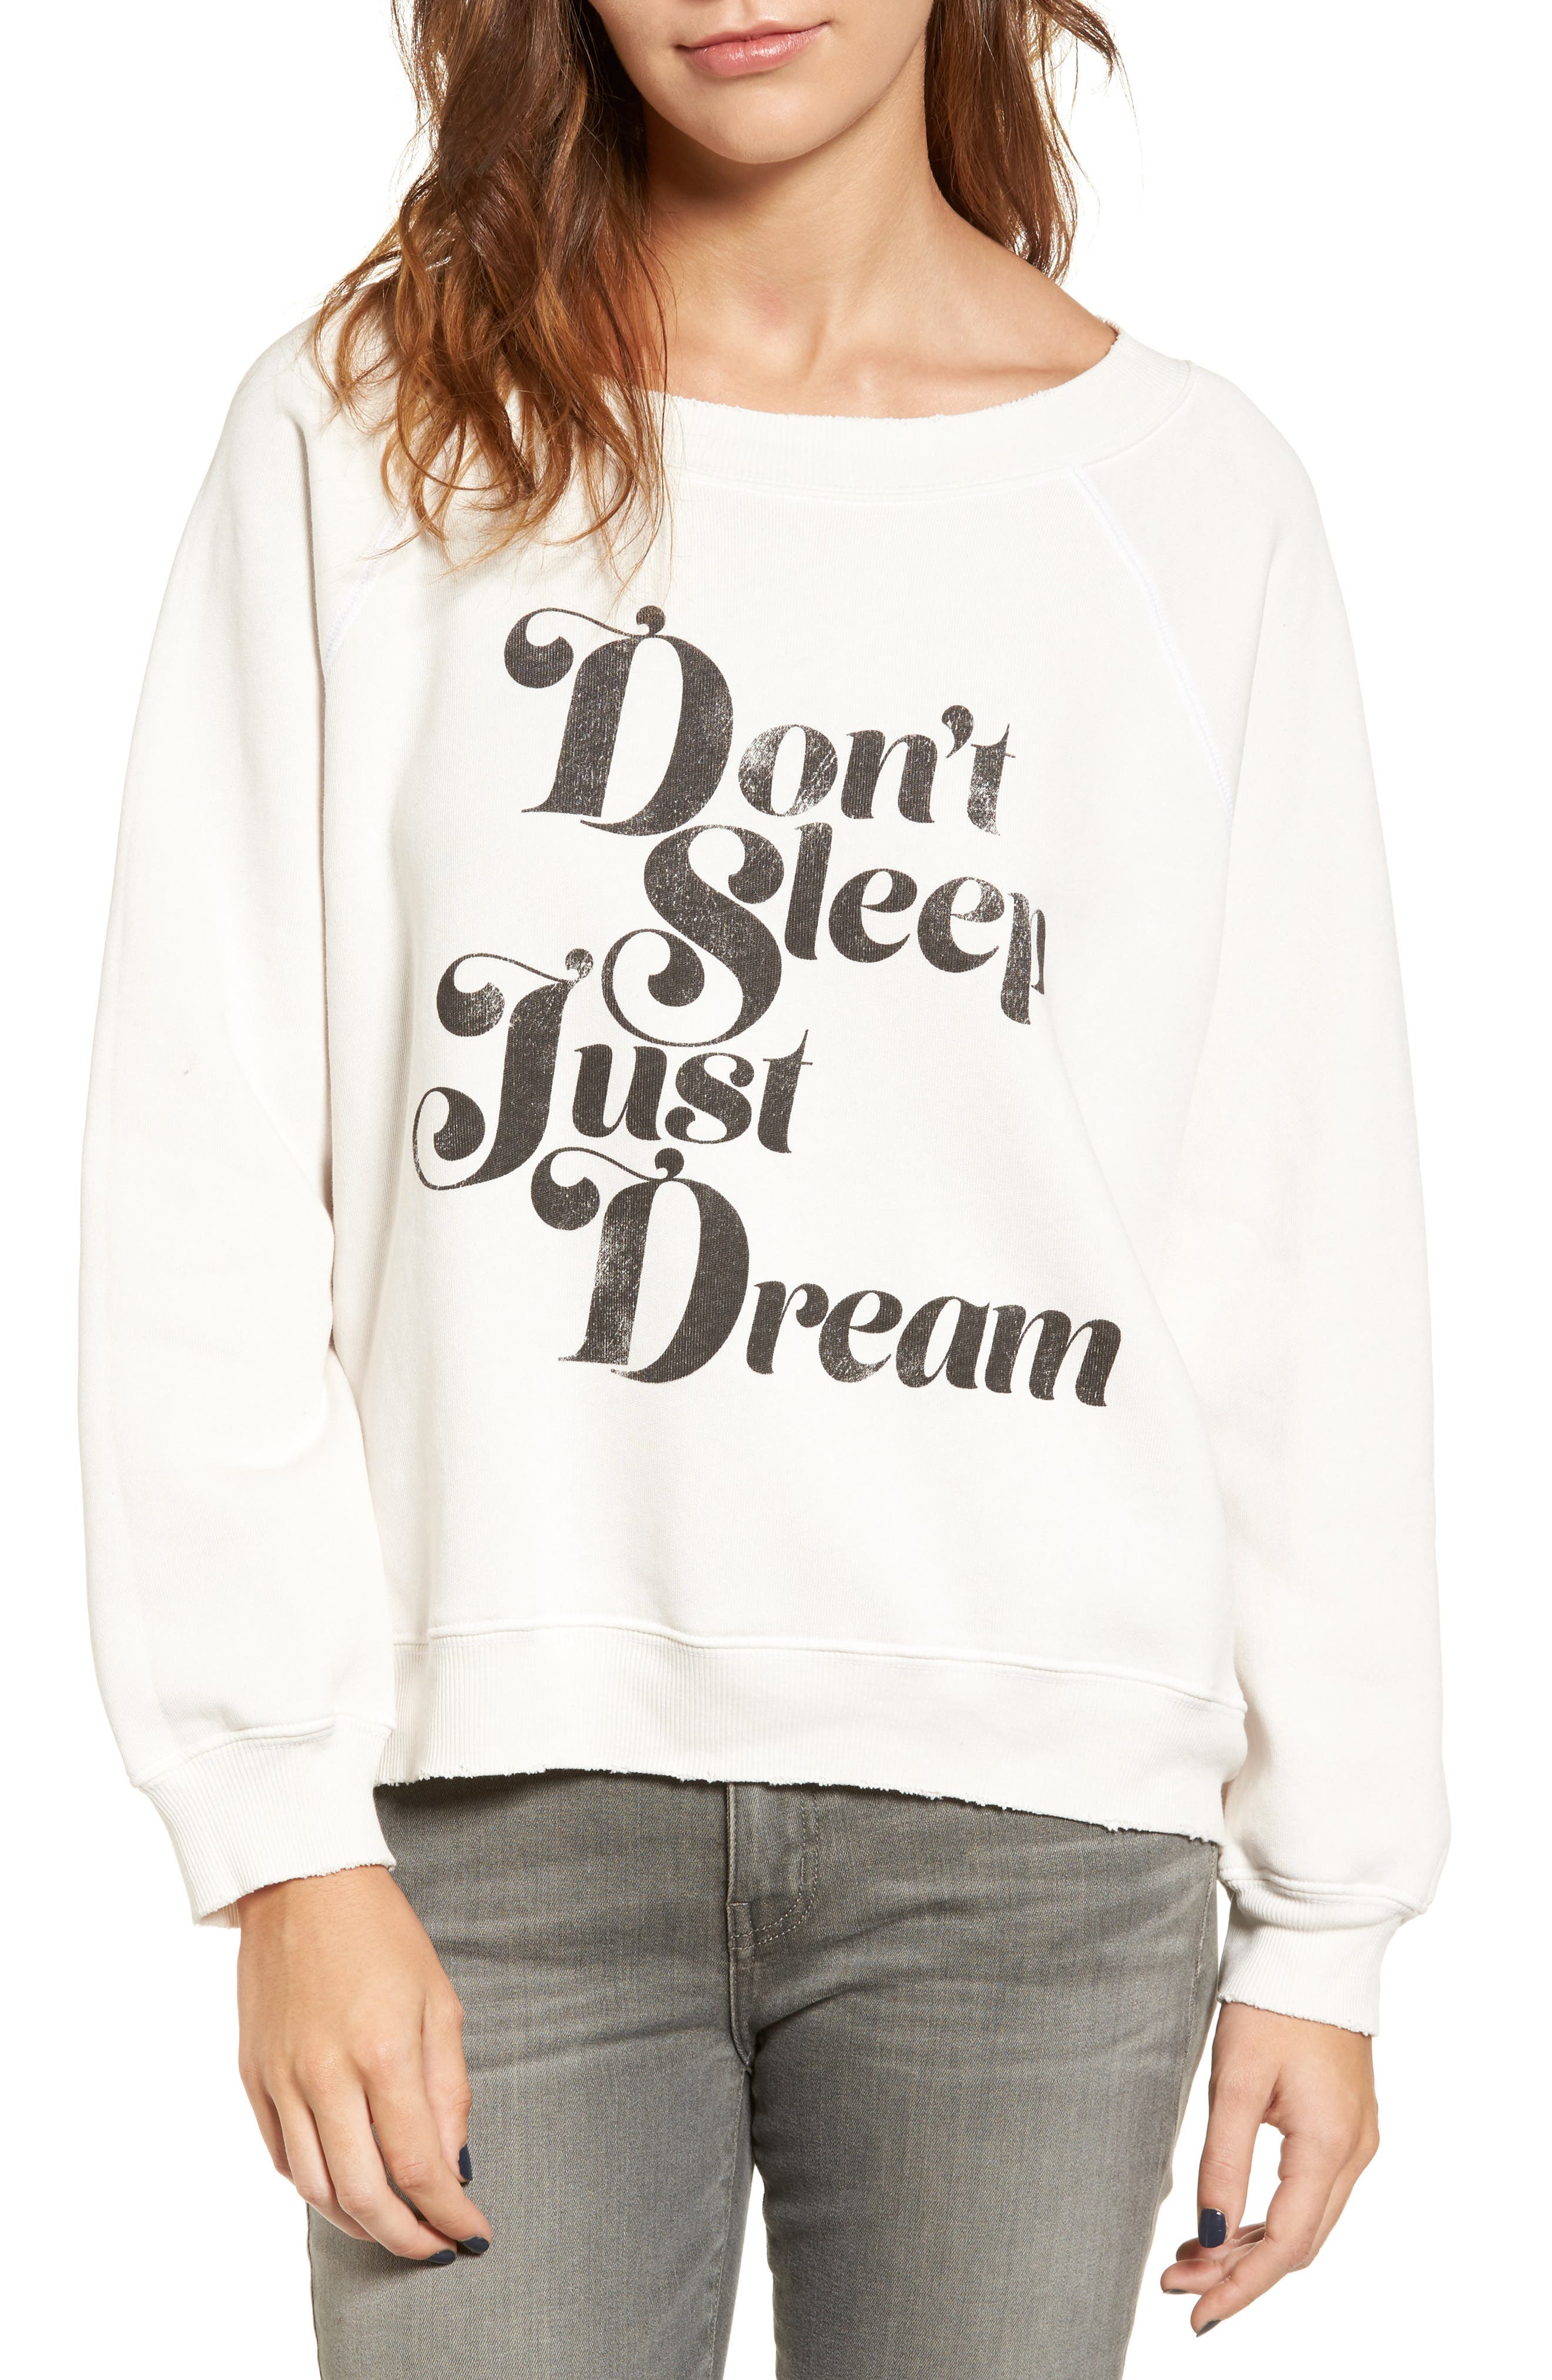 WILDFOX Sommers Sweater - Just Dream Pullover, Main, color, 020